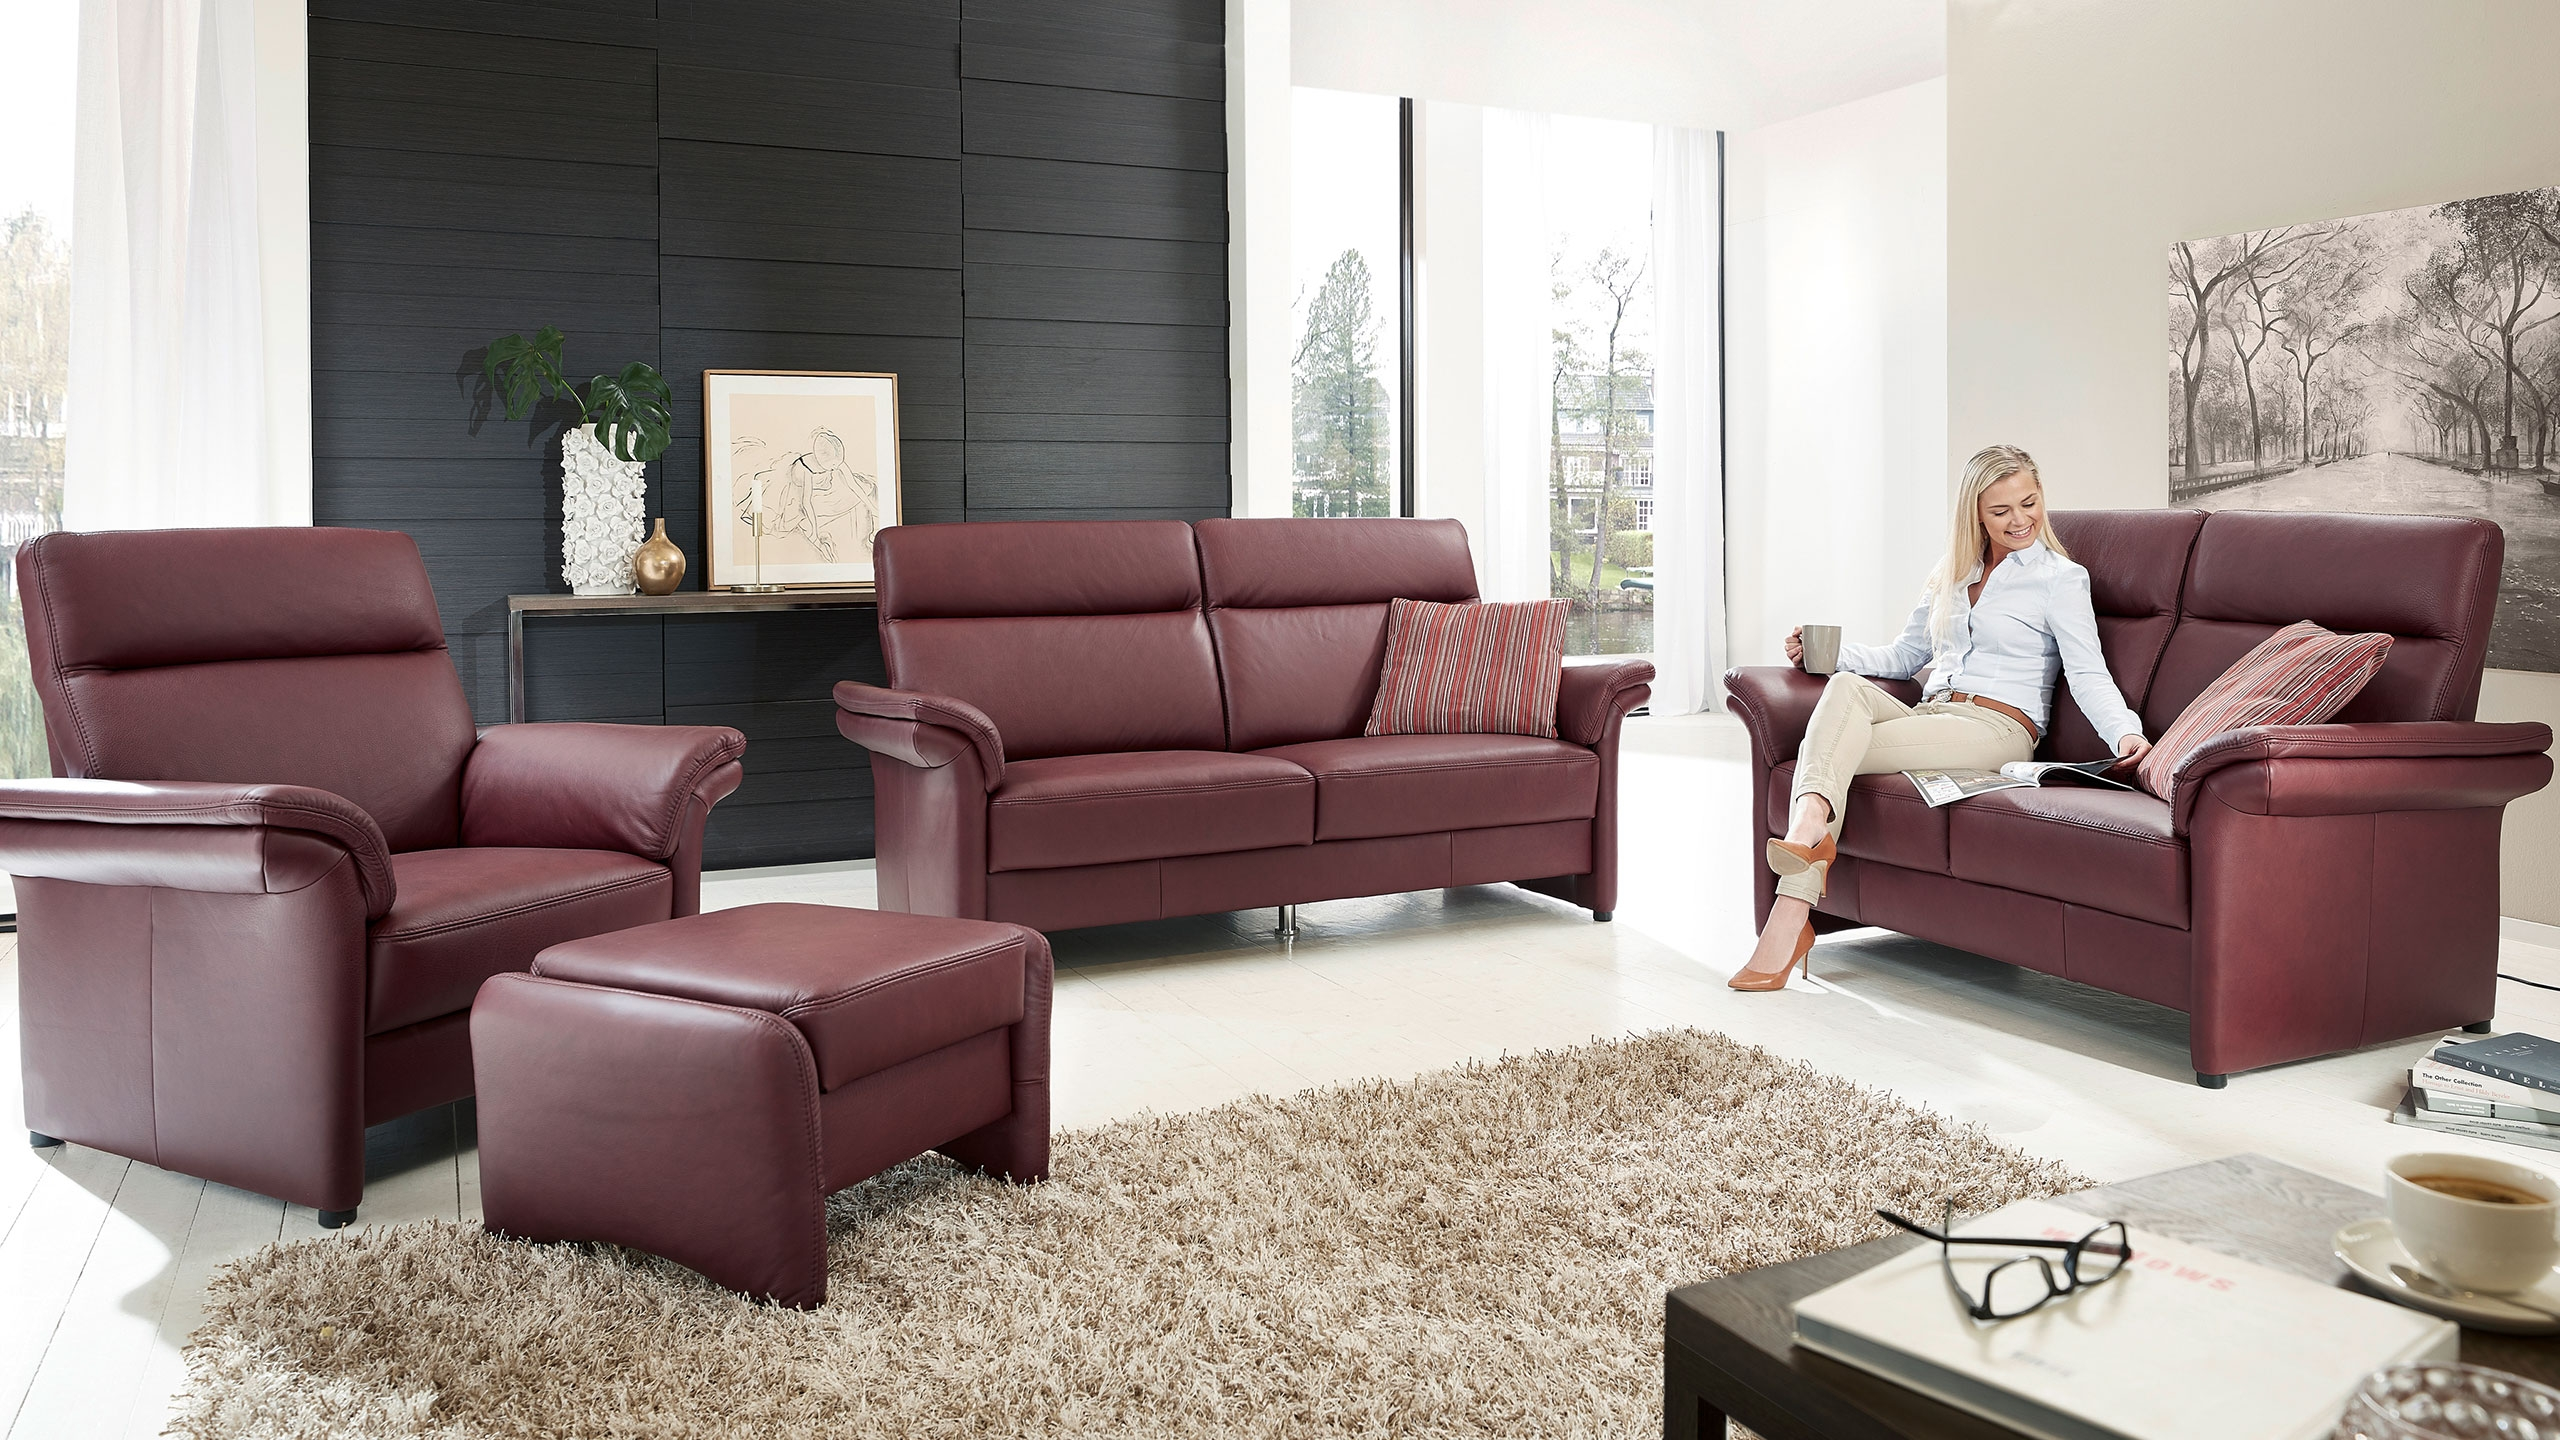 London Sofa Leder Rot